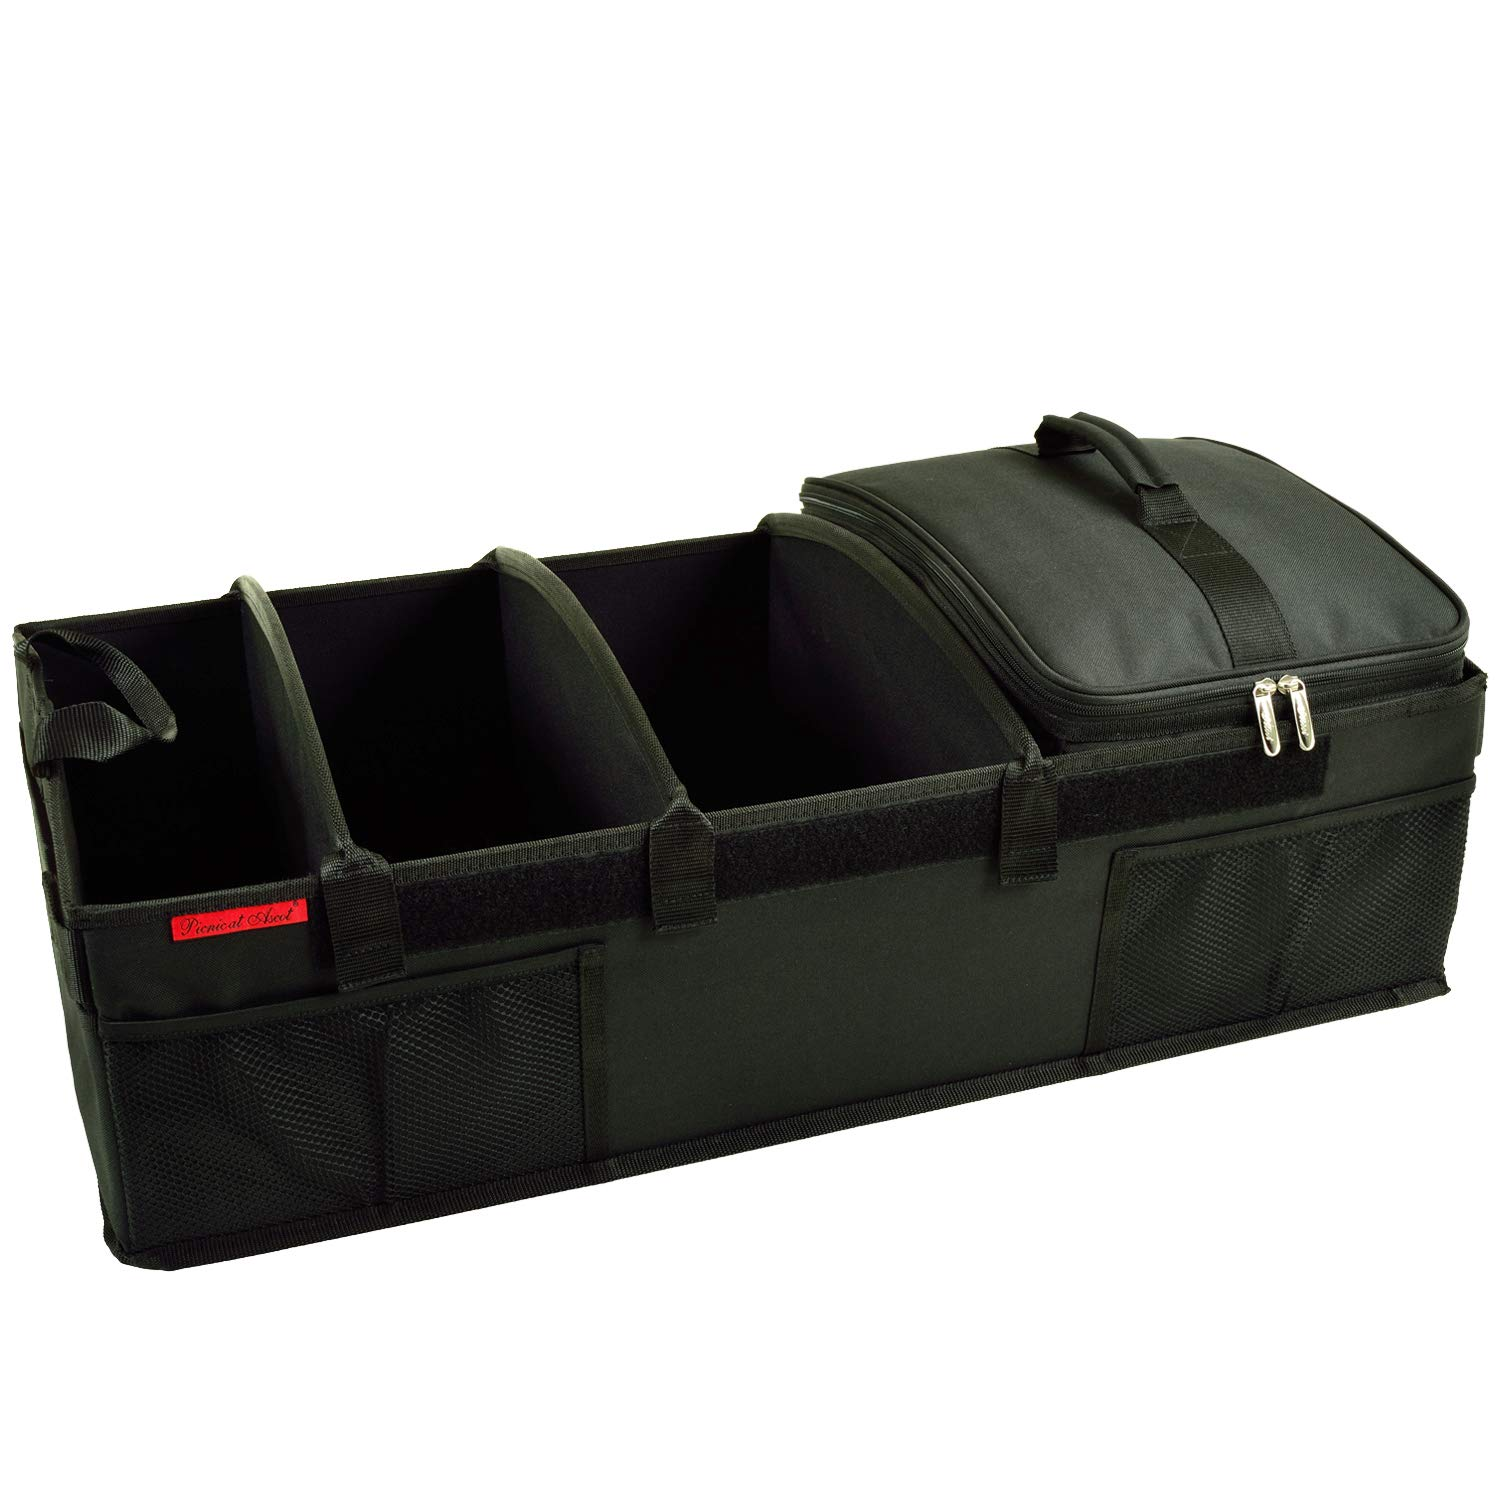 "Picnic at Ascot Heavy Duty Rigid Base Trunk Organizer with 28 Can Capacity Leak Proof Cooler- Adjustable Dividers - 30"" wide x 15"" deep - Designed & Quality Approved in the USA"